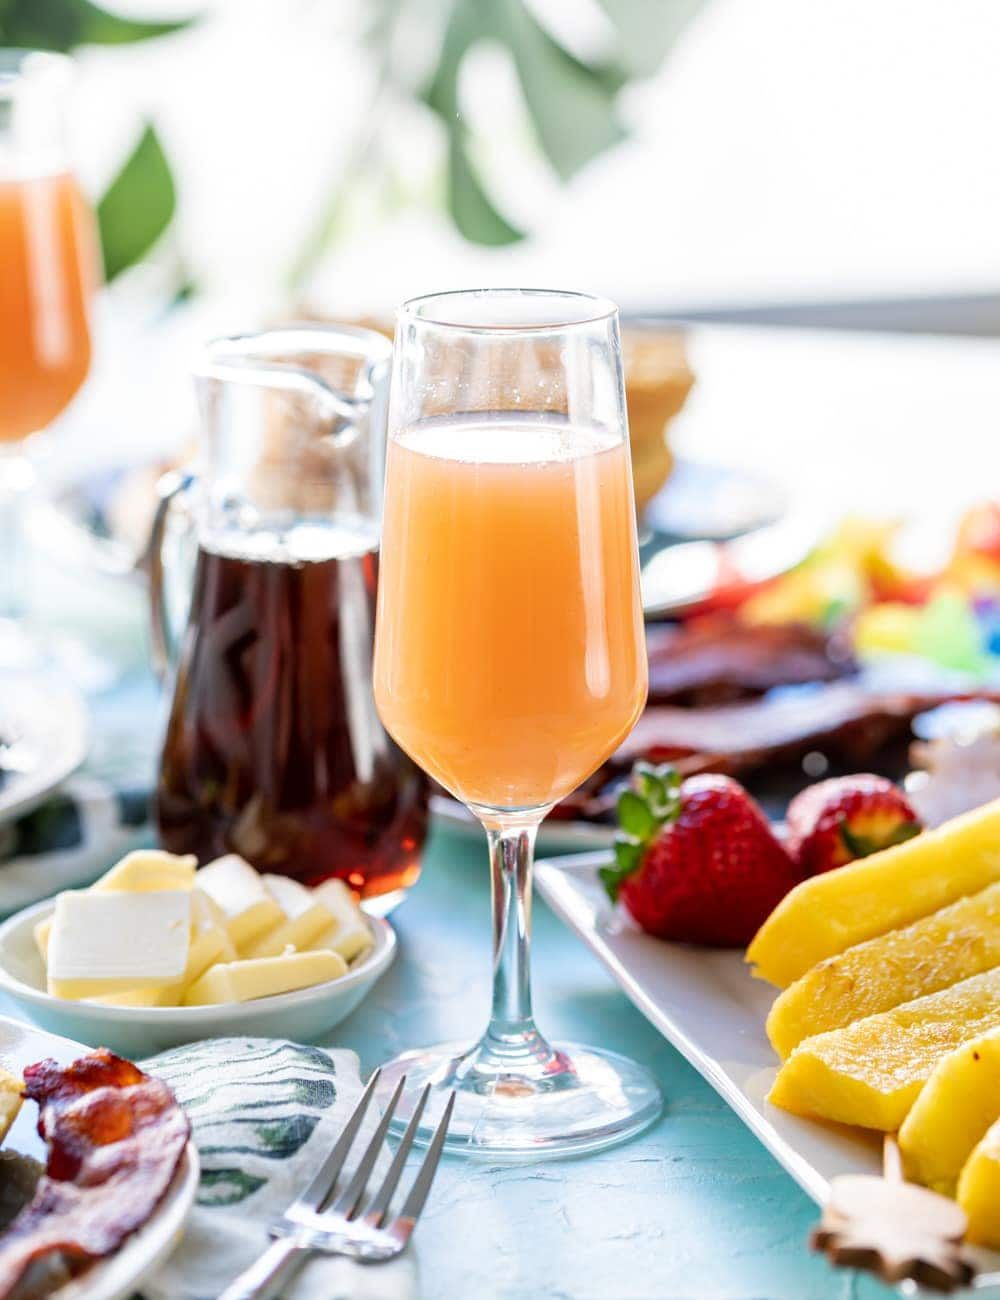 Guava Mimosa in a glass, pineapple spears on plate next to drink, butter on a dish, glass bottle of maple syrup